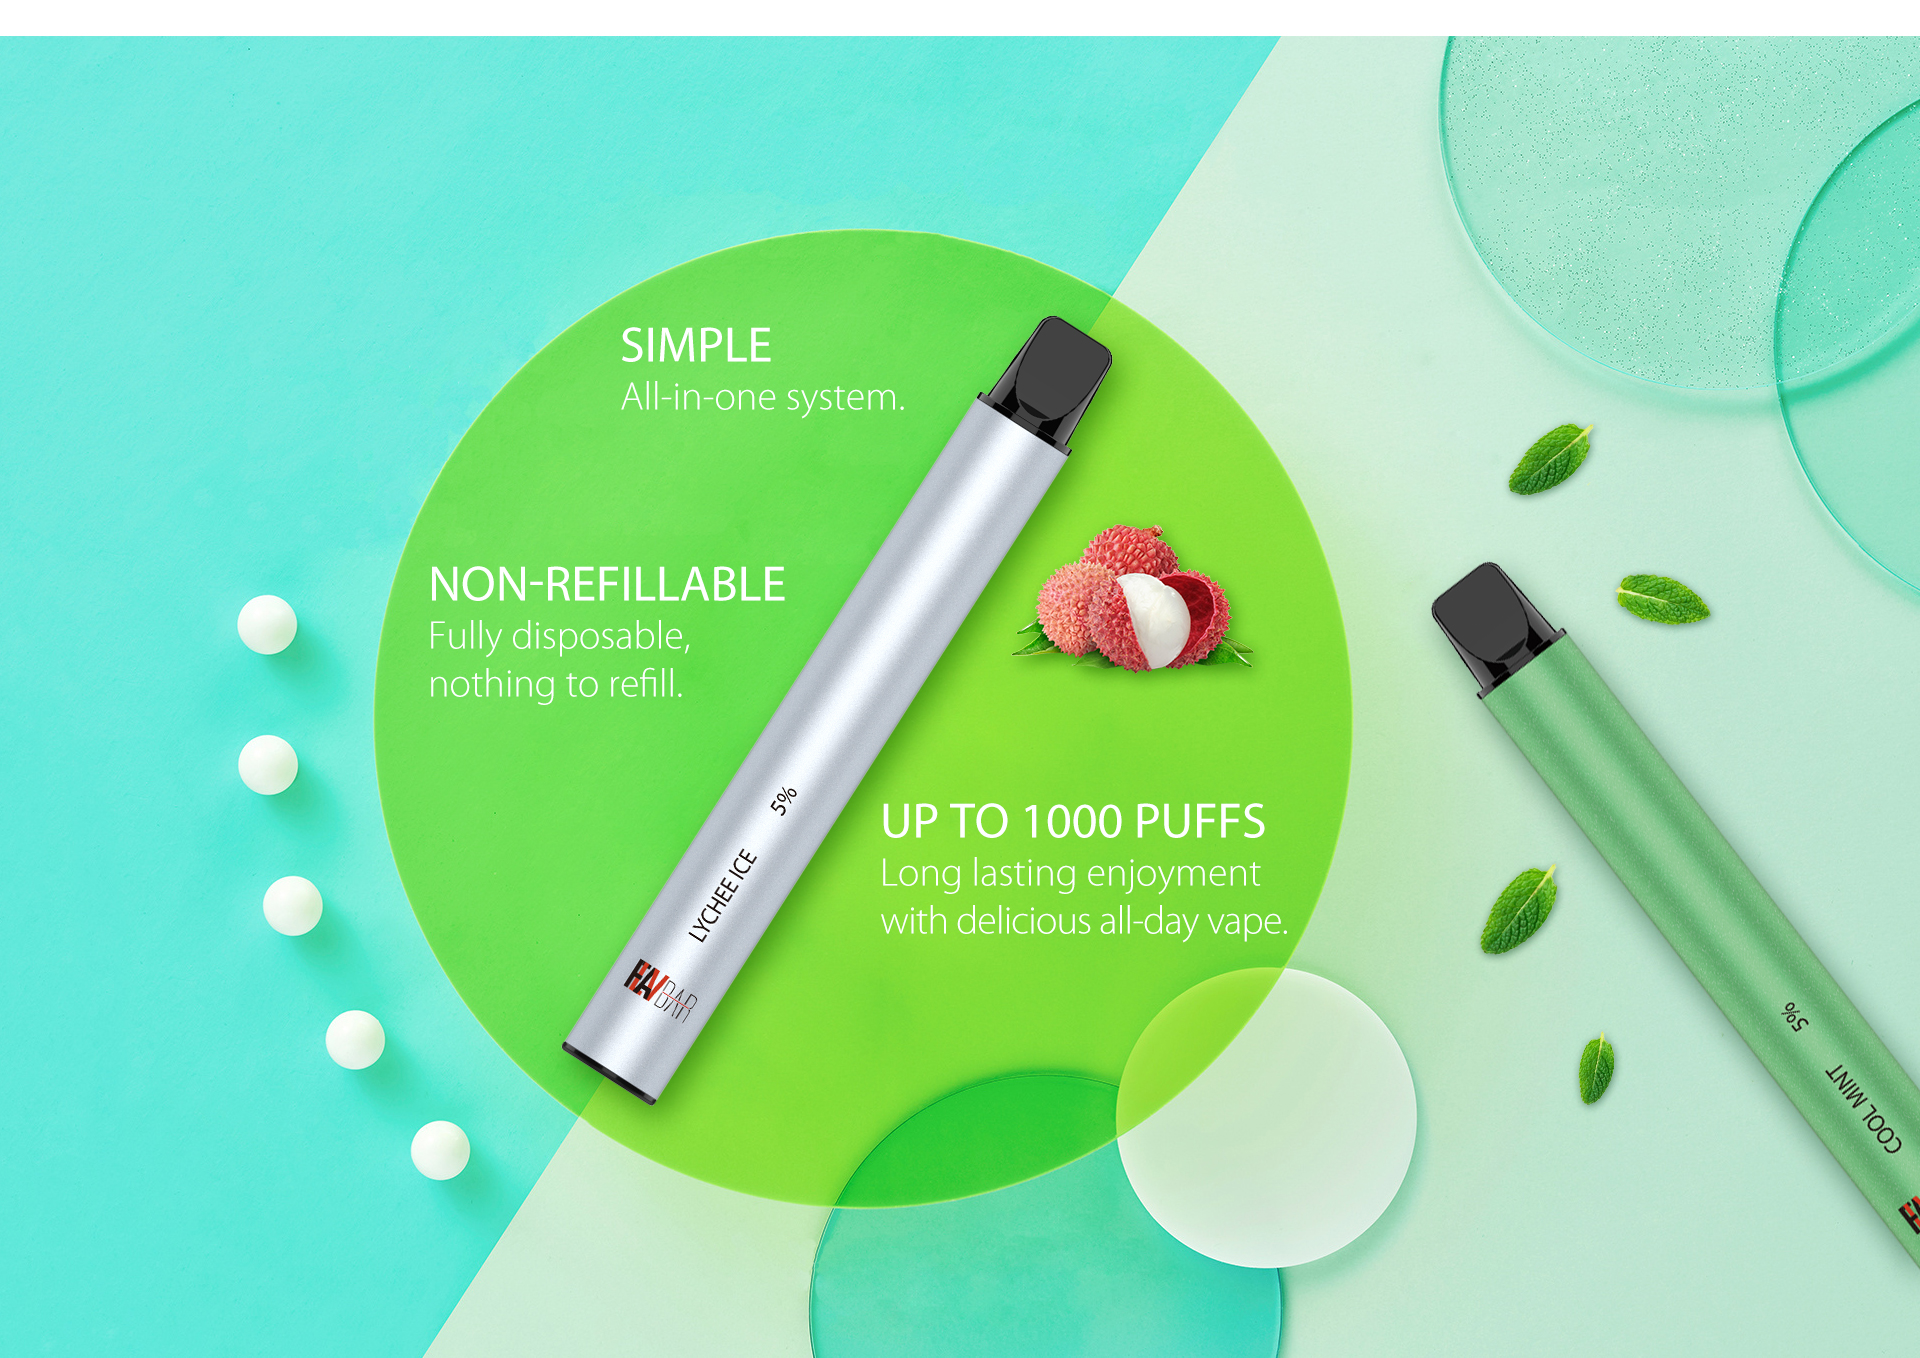 FLAVBAR v2 disposable device is fully disposable and nothing to refill.